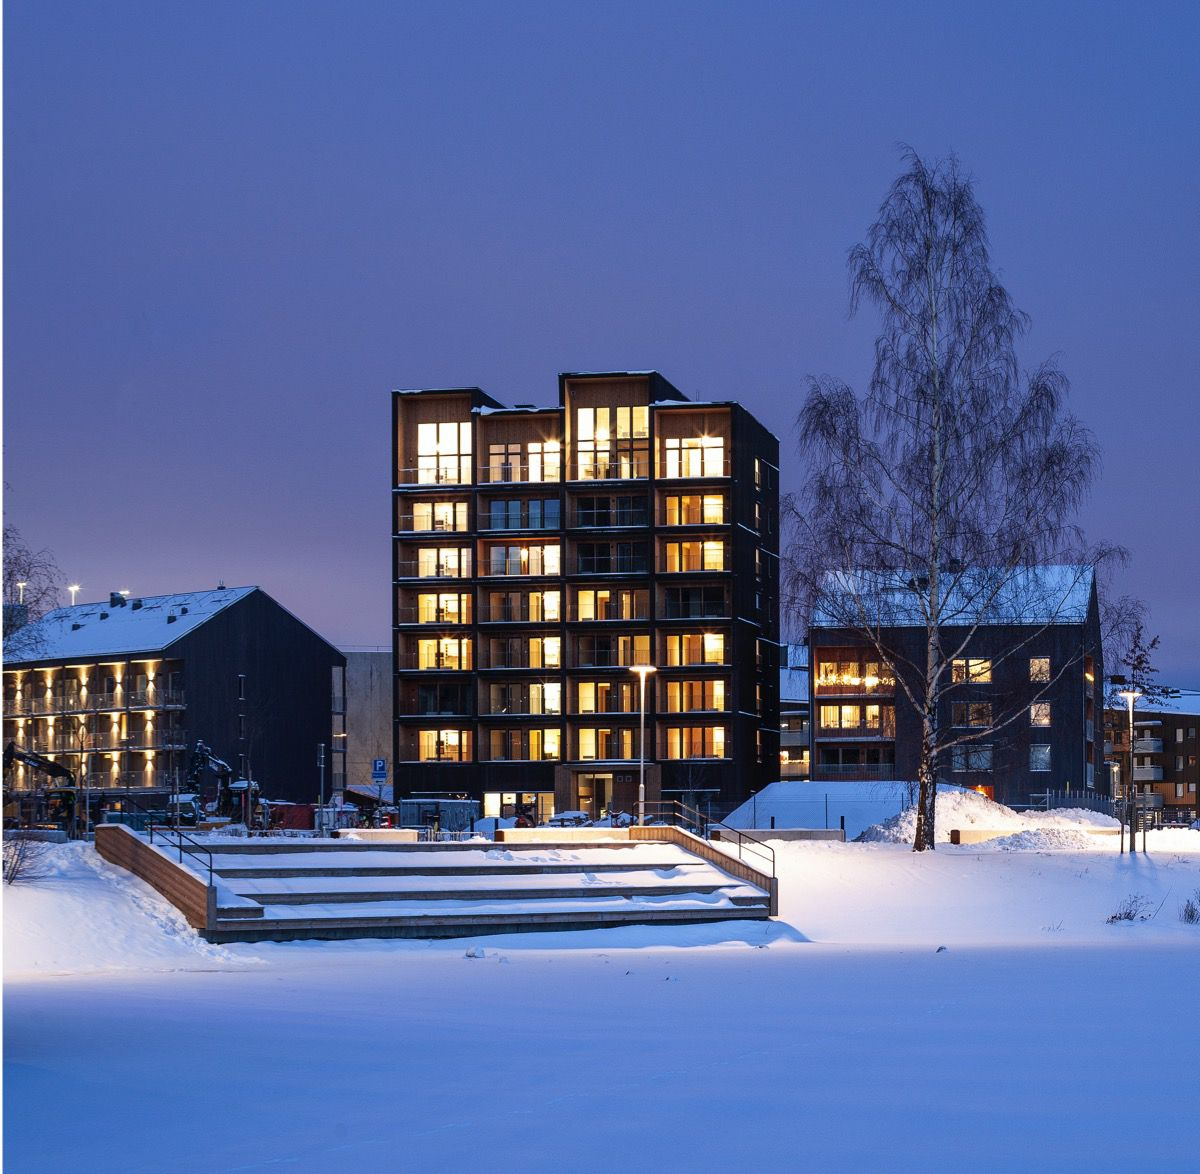 Tallest Timber Tower in Sweden Is About a Lot More Than Just Wood